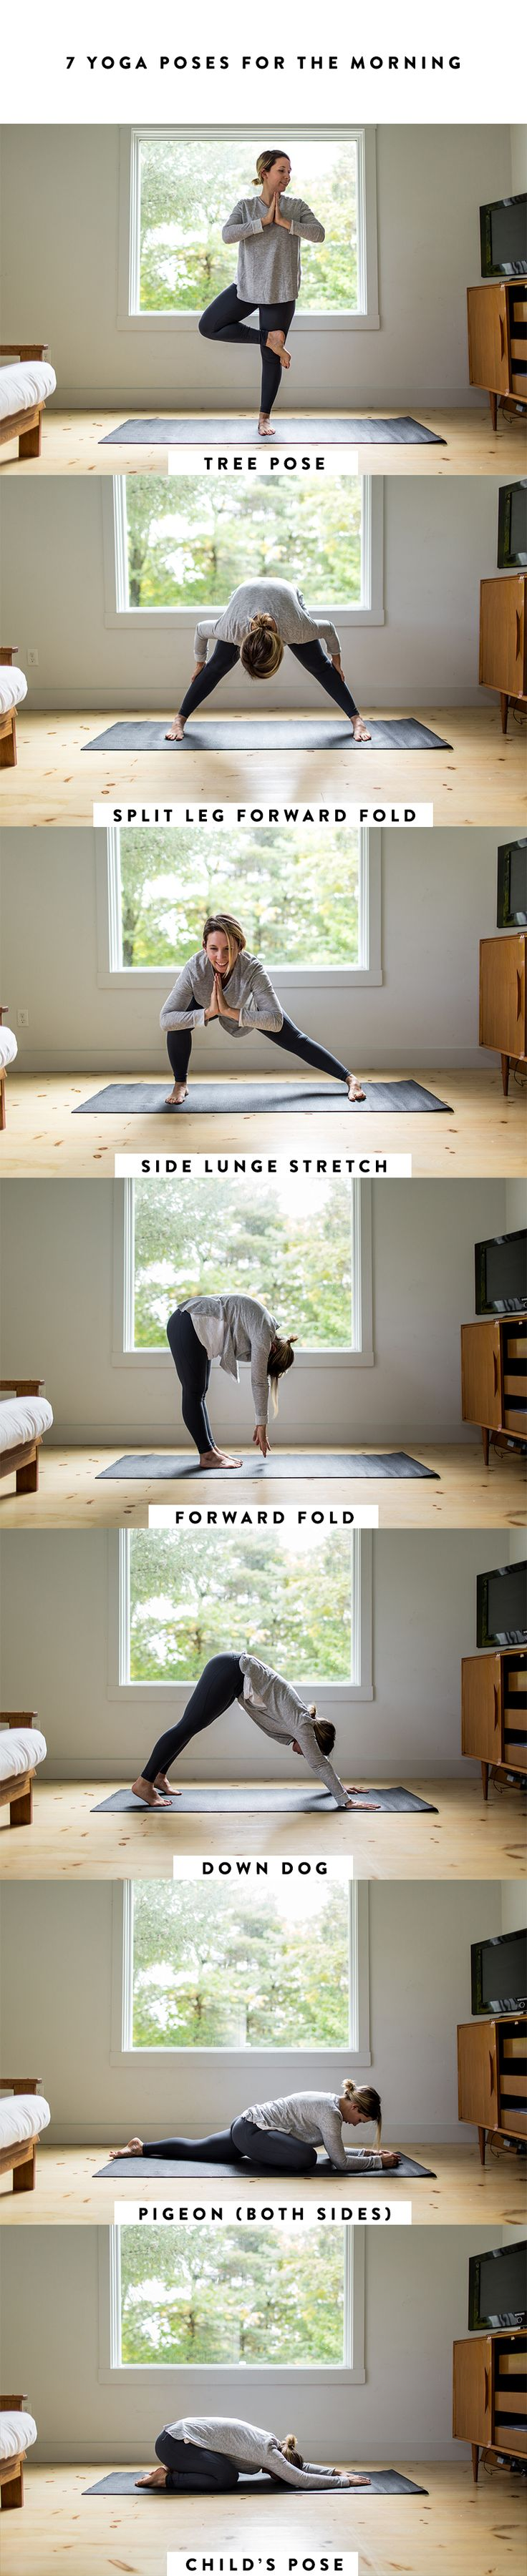 Workouts : A SImple Morning Yoga Routine to Make the Most ...